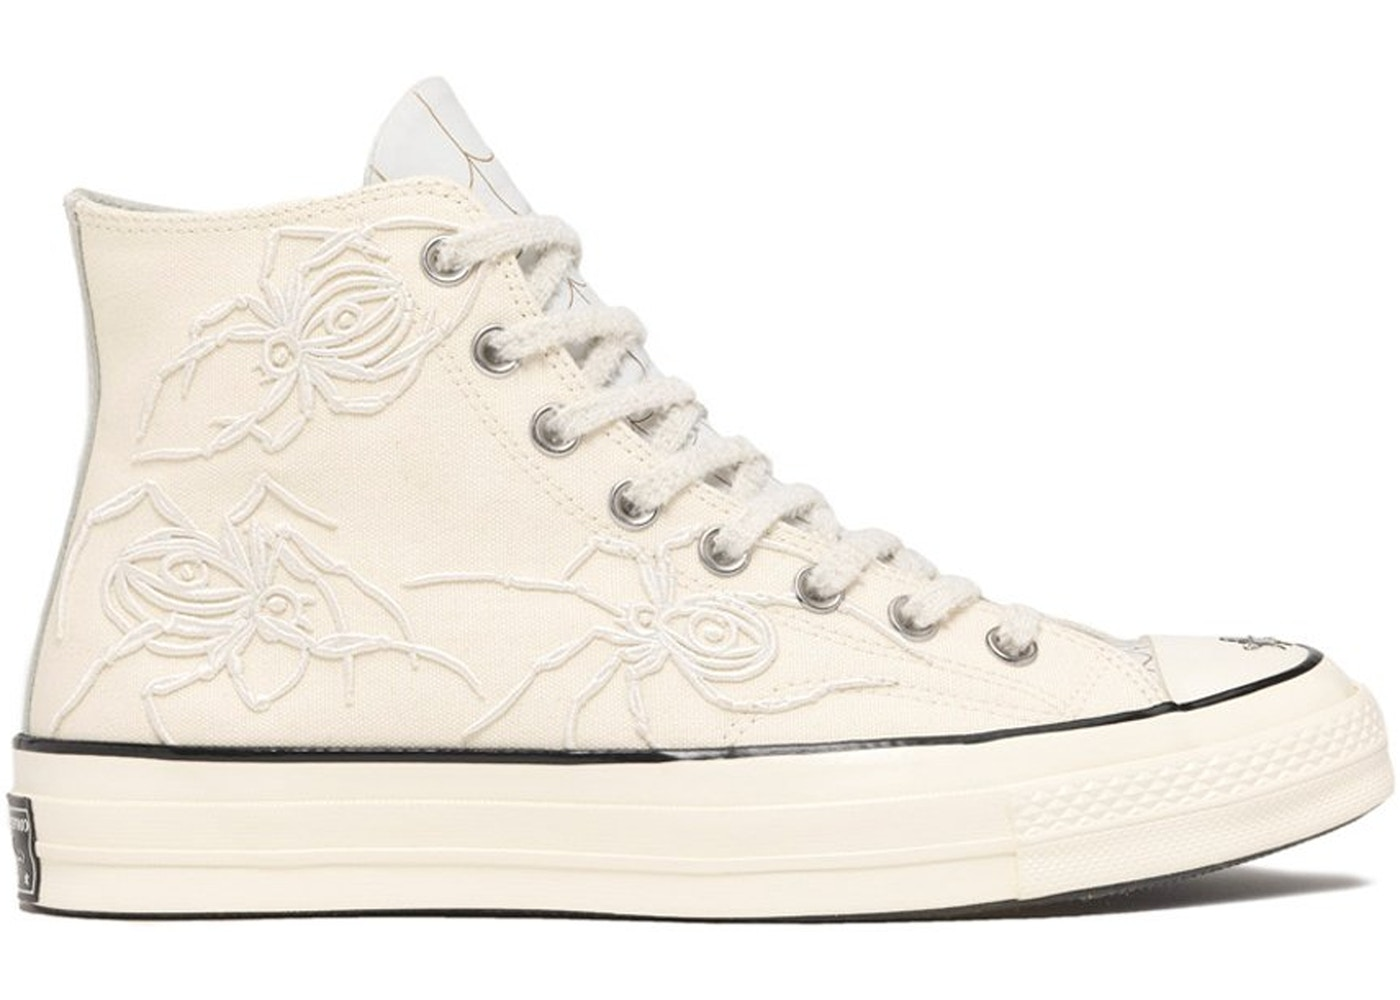 0aa47594feed Converse Chuck Taylor All-Star 70s Hi Dr. Woo White - 160917C